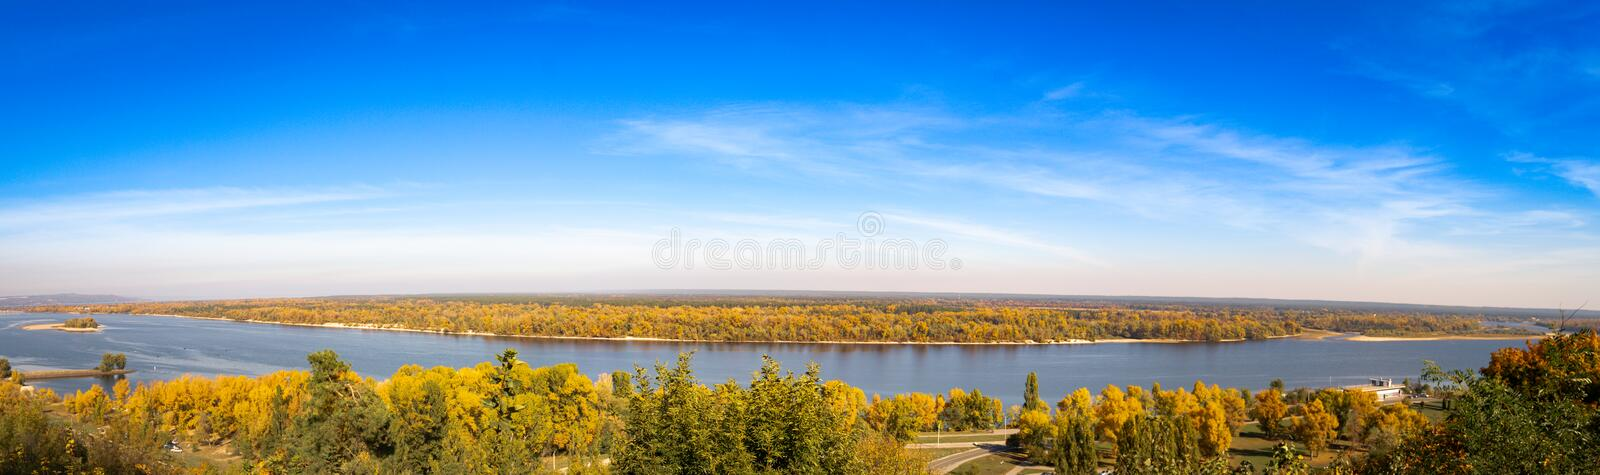 Panoramic view of the Dnieper River in autumn. Kaniv, Ukraine, Tarasova Hill Chernecha Hora royalty free stock photography